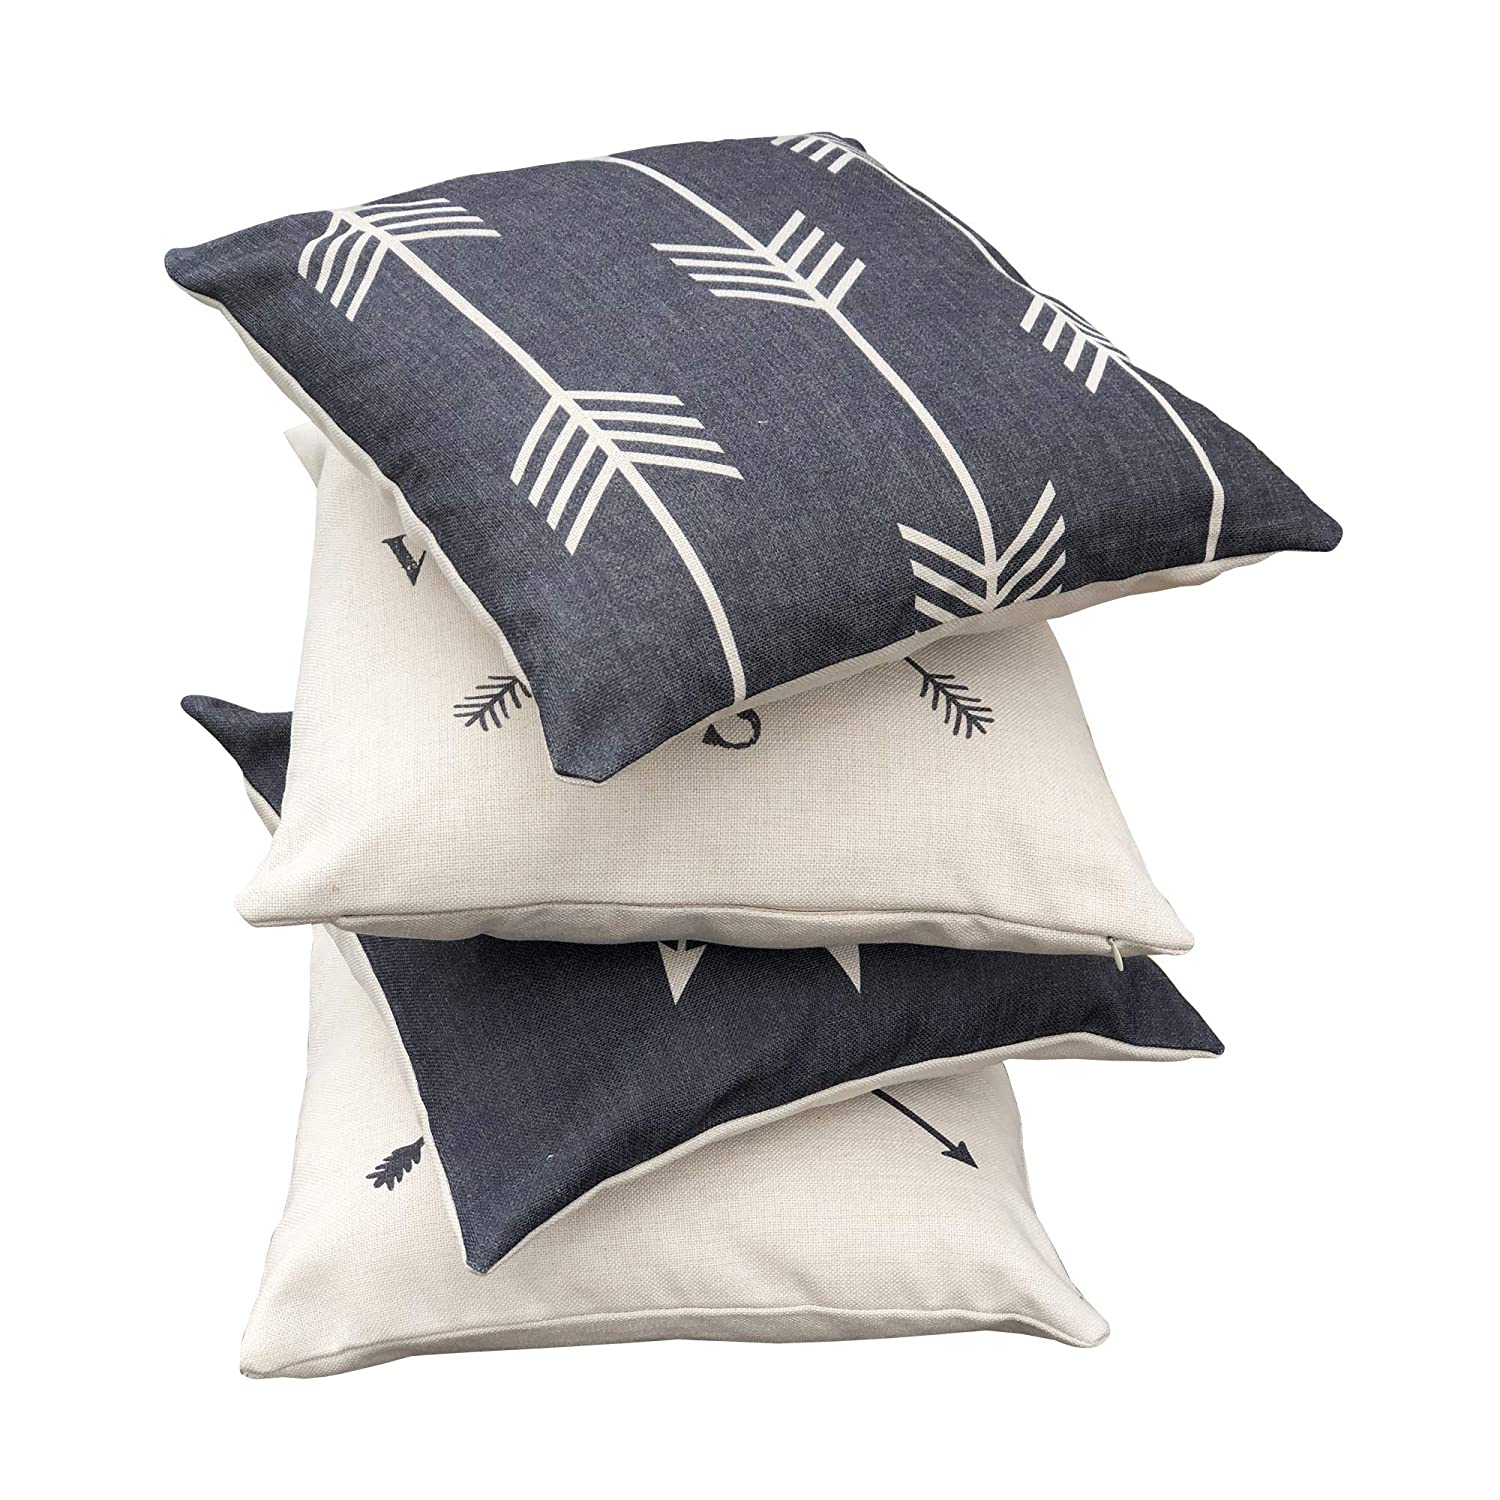 4 Pc. Set Boho Neutral Colors Patio Decor Hermosa Collection Contemporary Decorative Throw Pillow Covers and Bed Accessories Living Room Couch Sofa 18 x 18 Cotton Linen Squares Bedroom